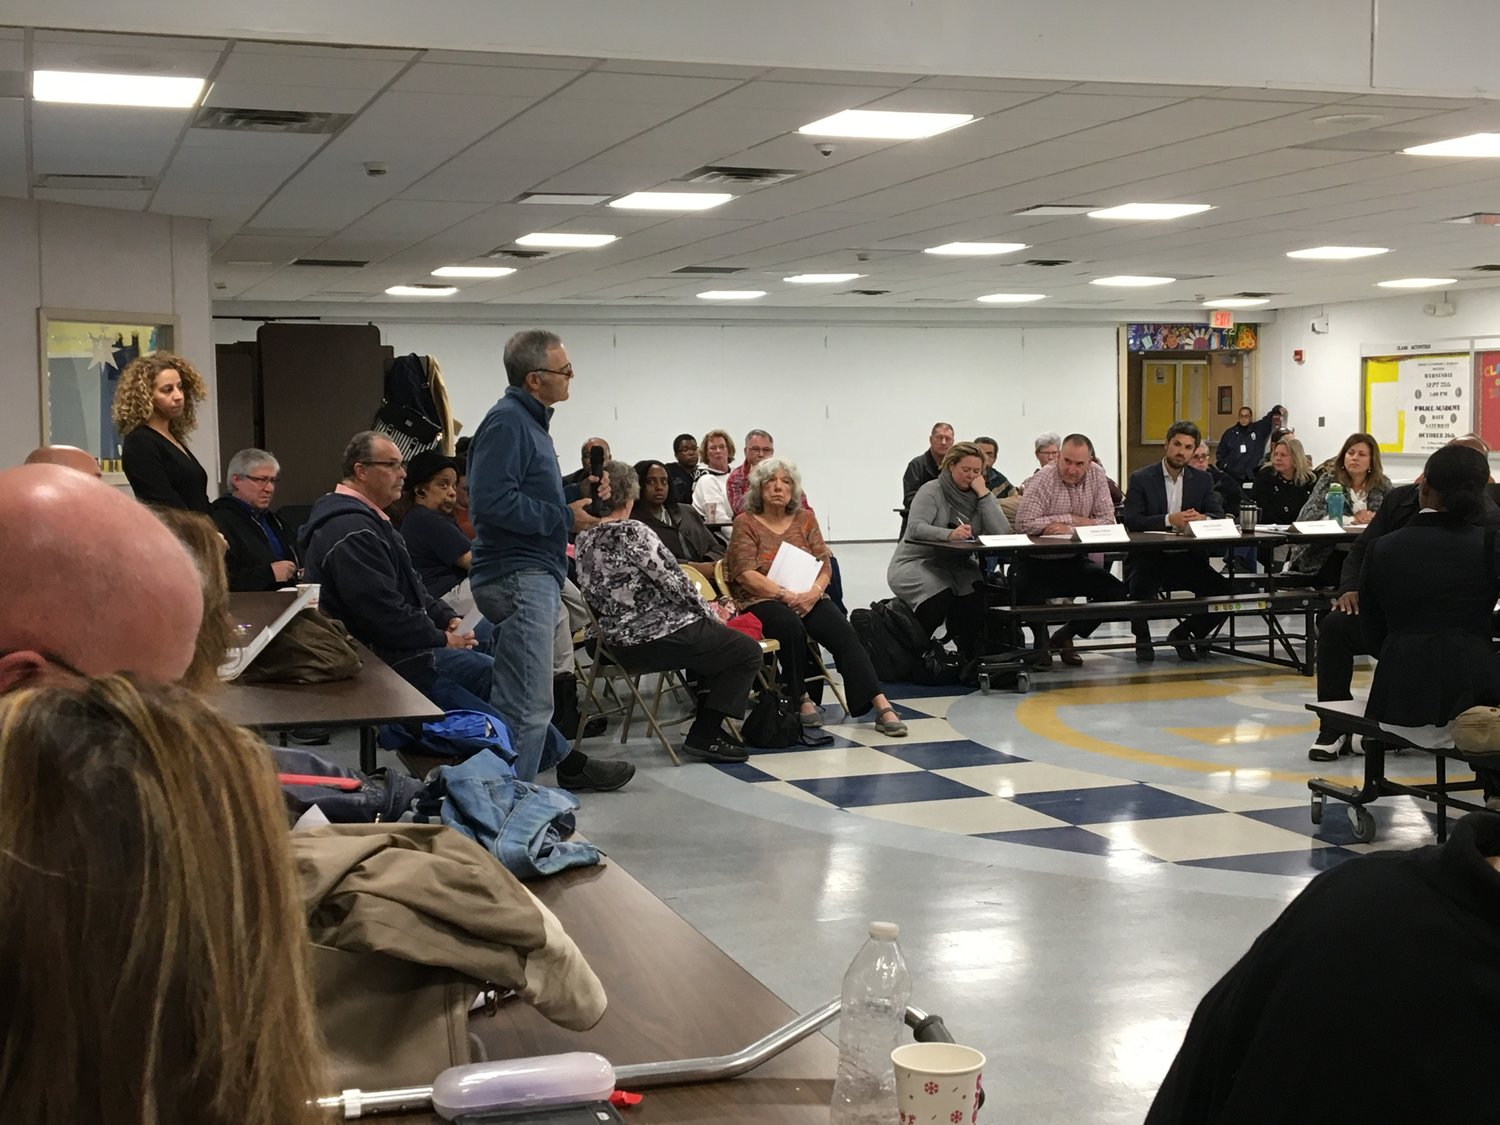 Baldwin Civic Association Vice President Steve Greenfield shared his concerns during the public comment period of the first Baldwin Downtown Revitalization Initiative Local Planning Committee meeting on Nov. 7.